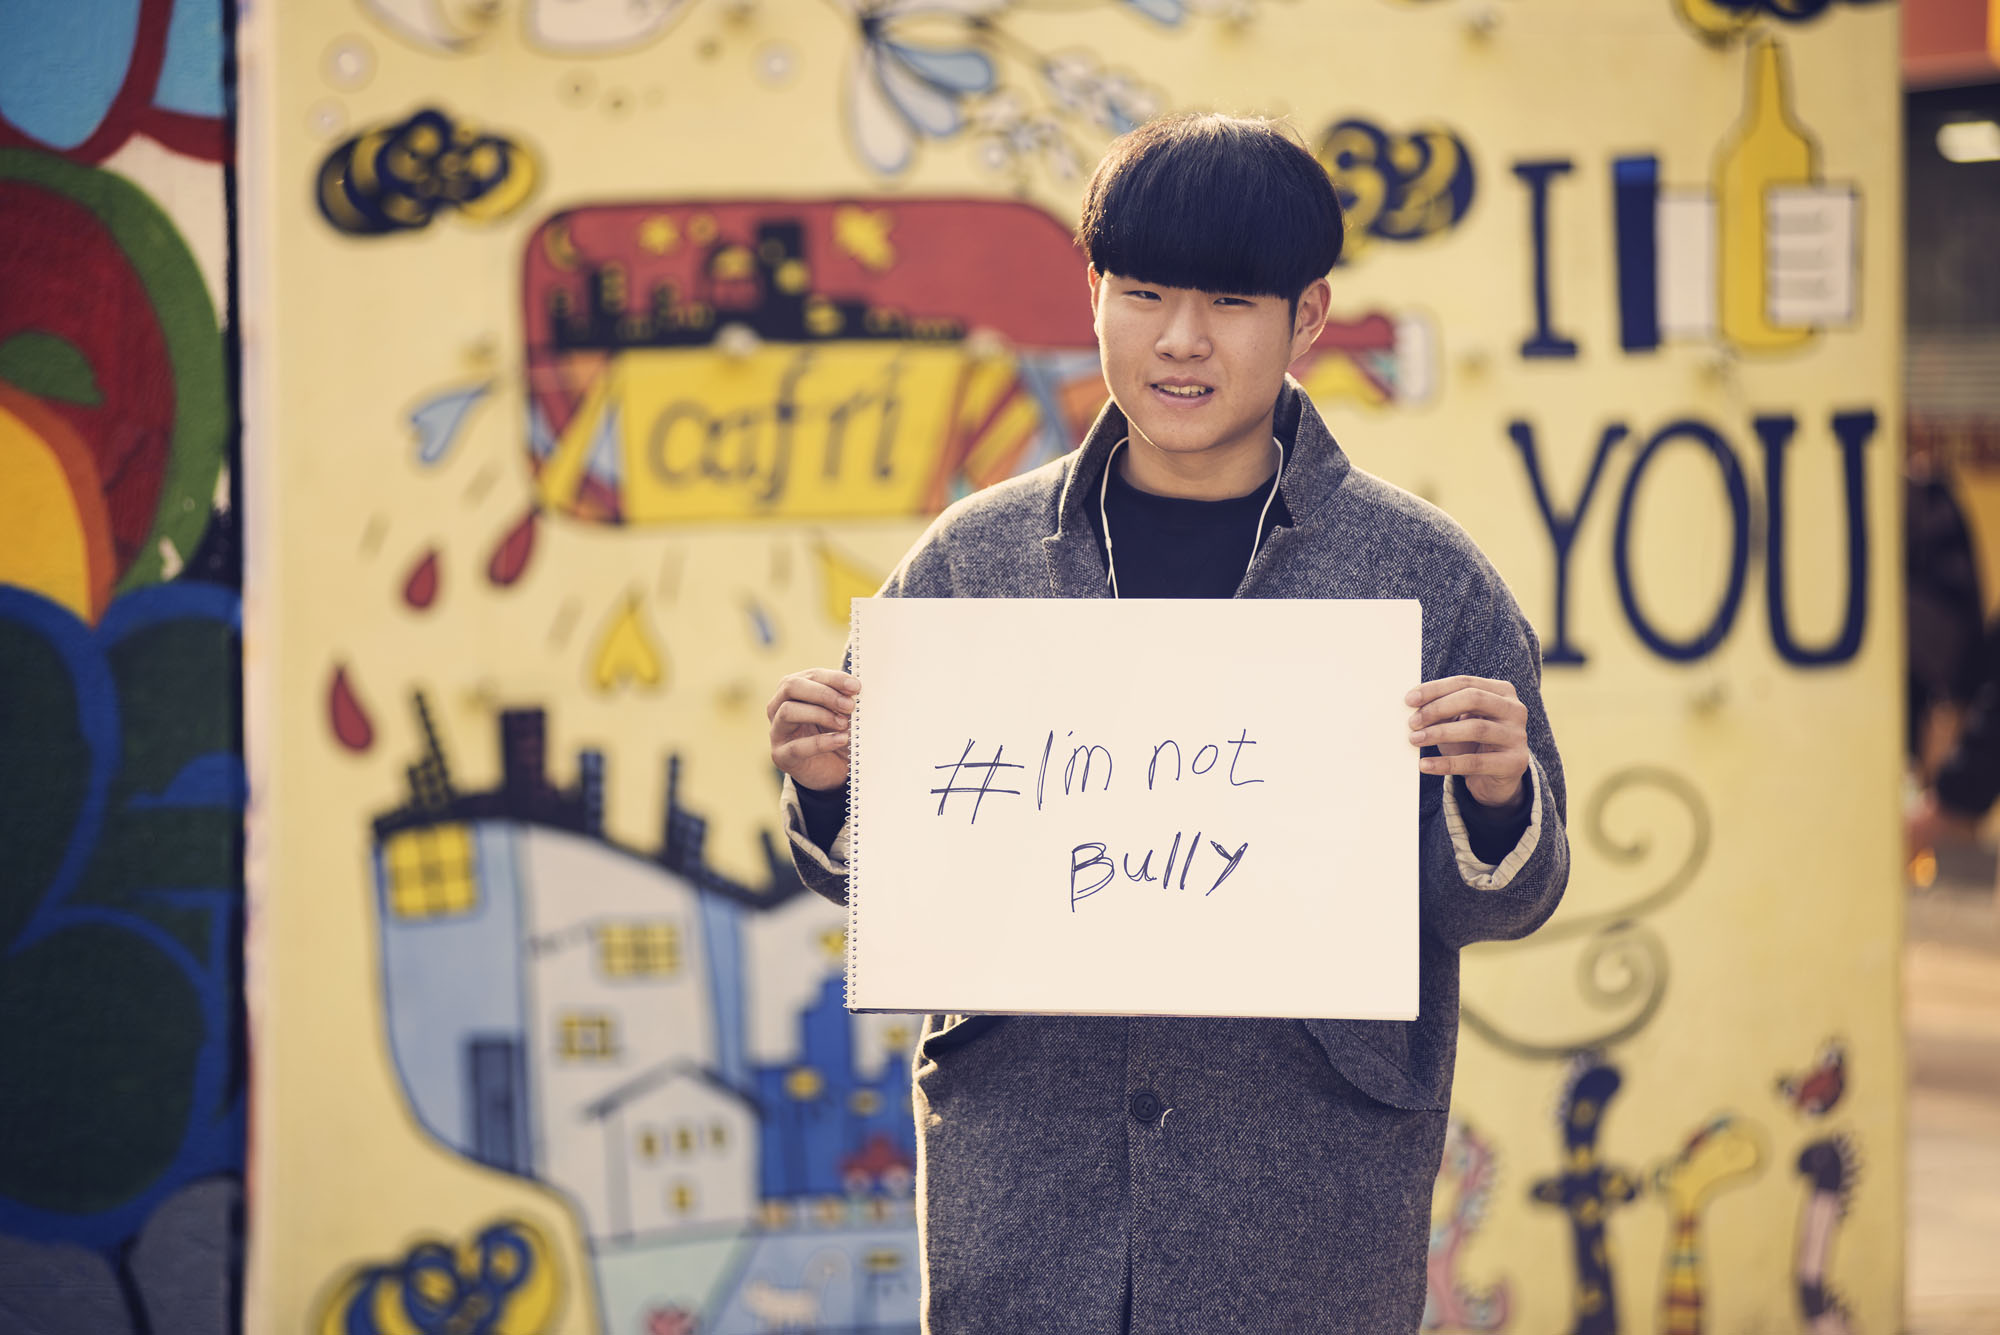 #Imnot a bully